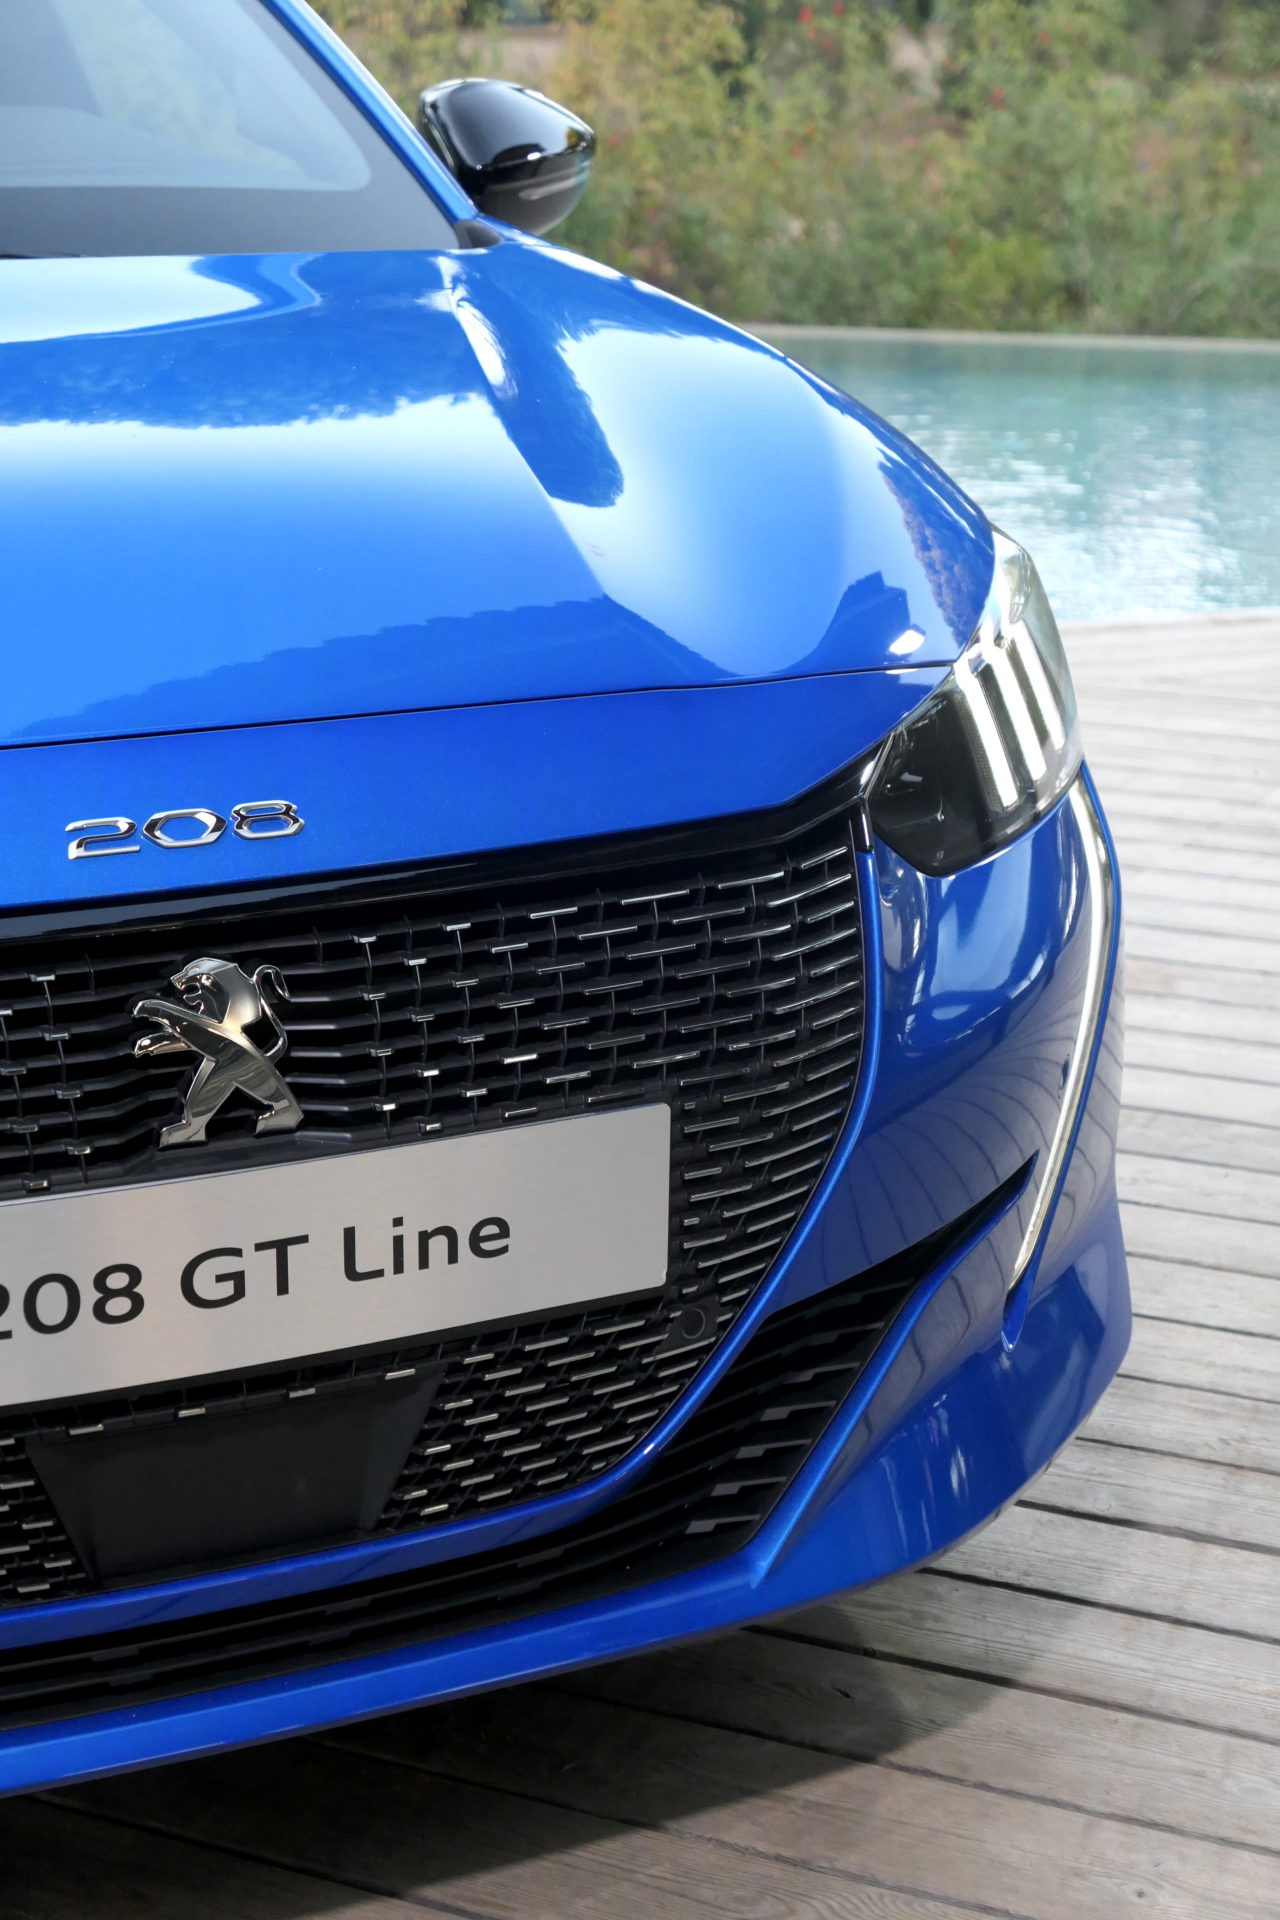 roadrugcars road rug cars peugeot 208 e 208 serious grille